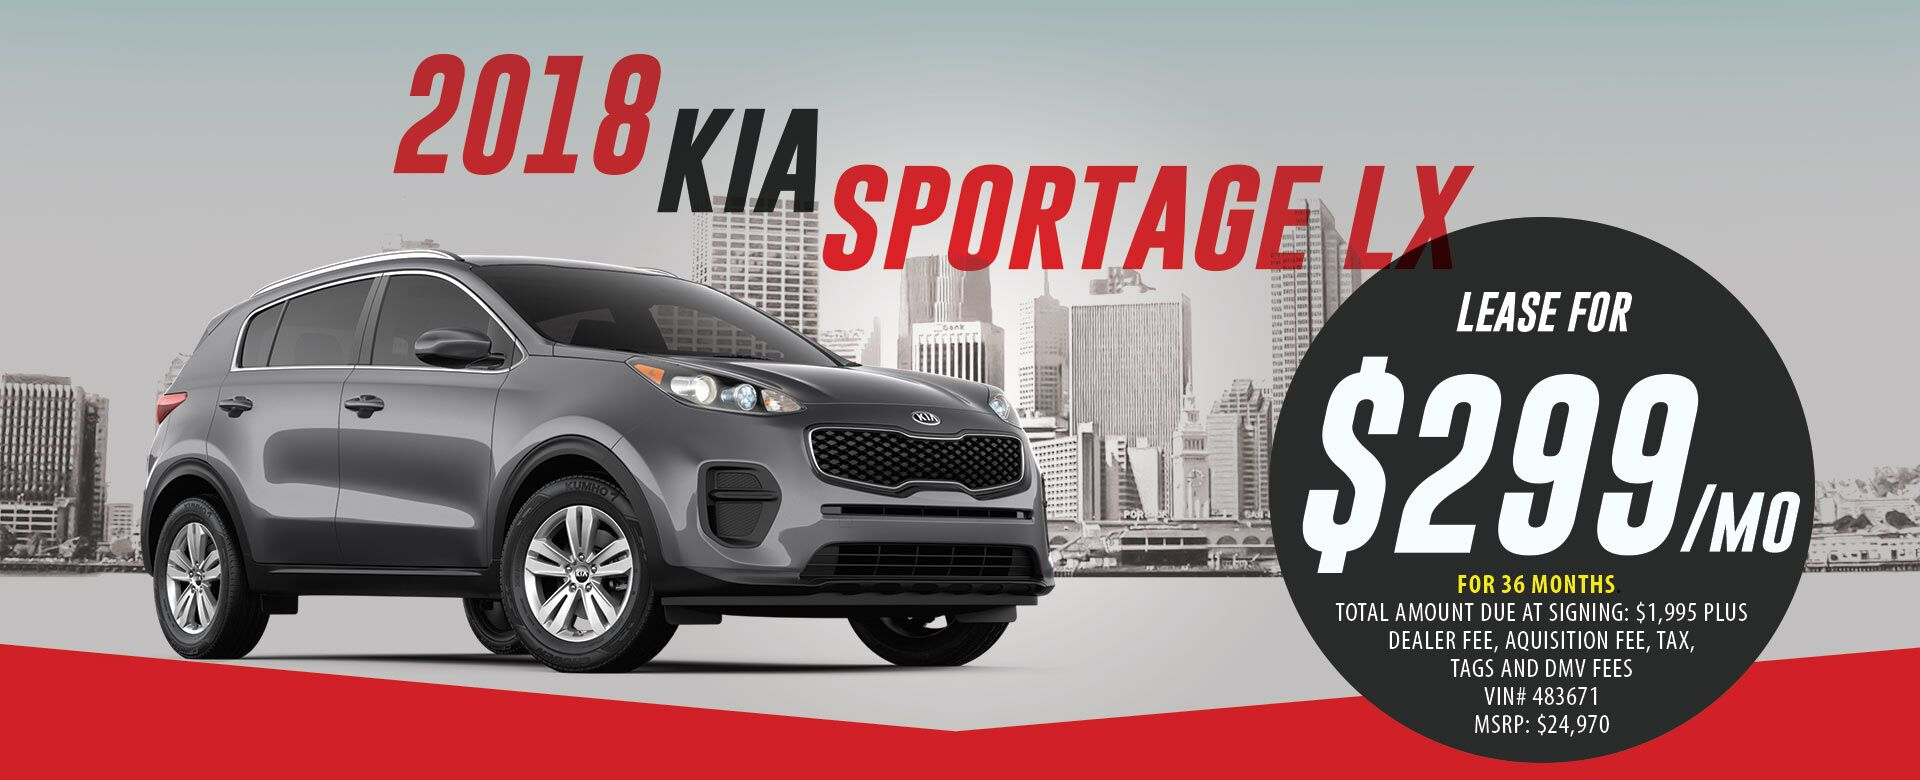 Lease a 2018 Kia Sportage LX for $299/month for 36 months